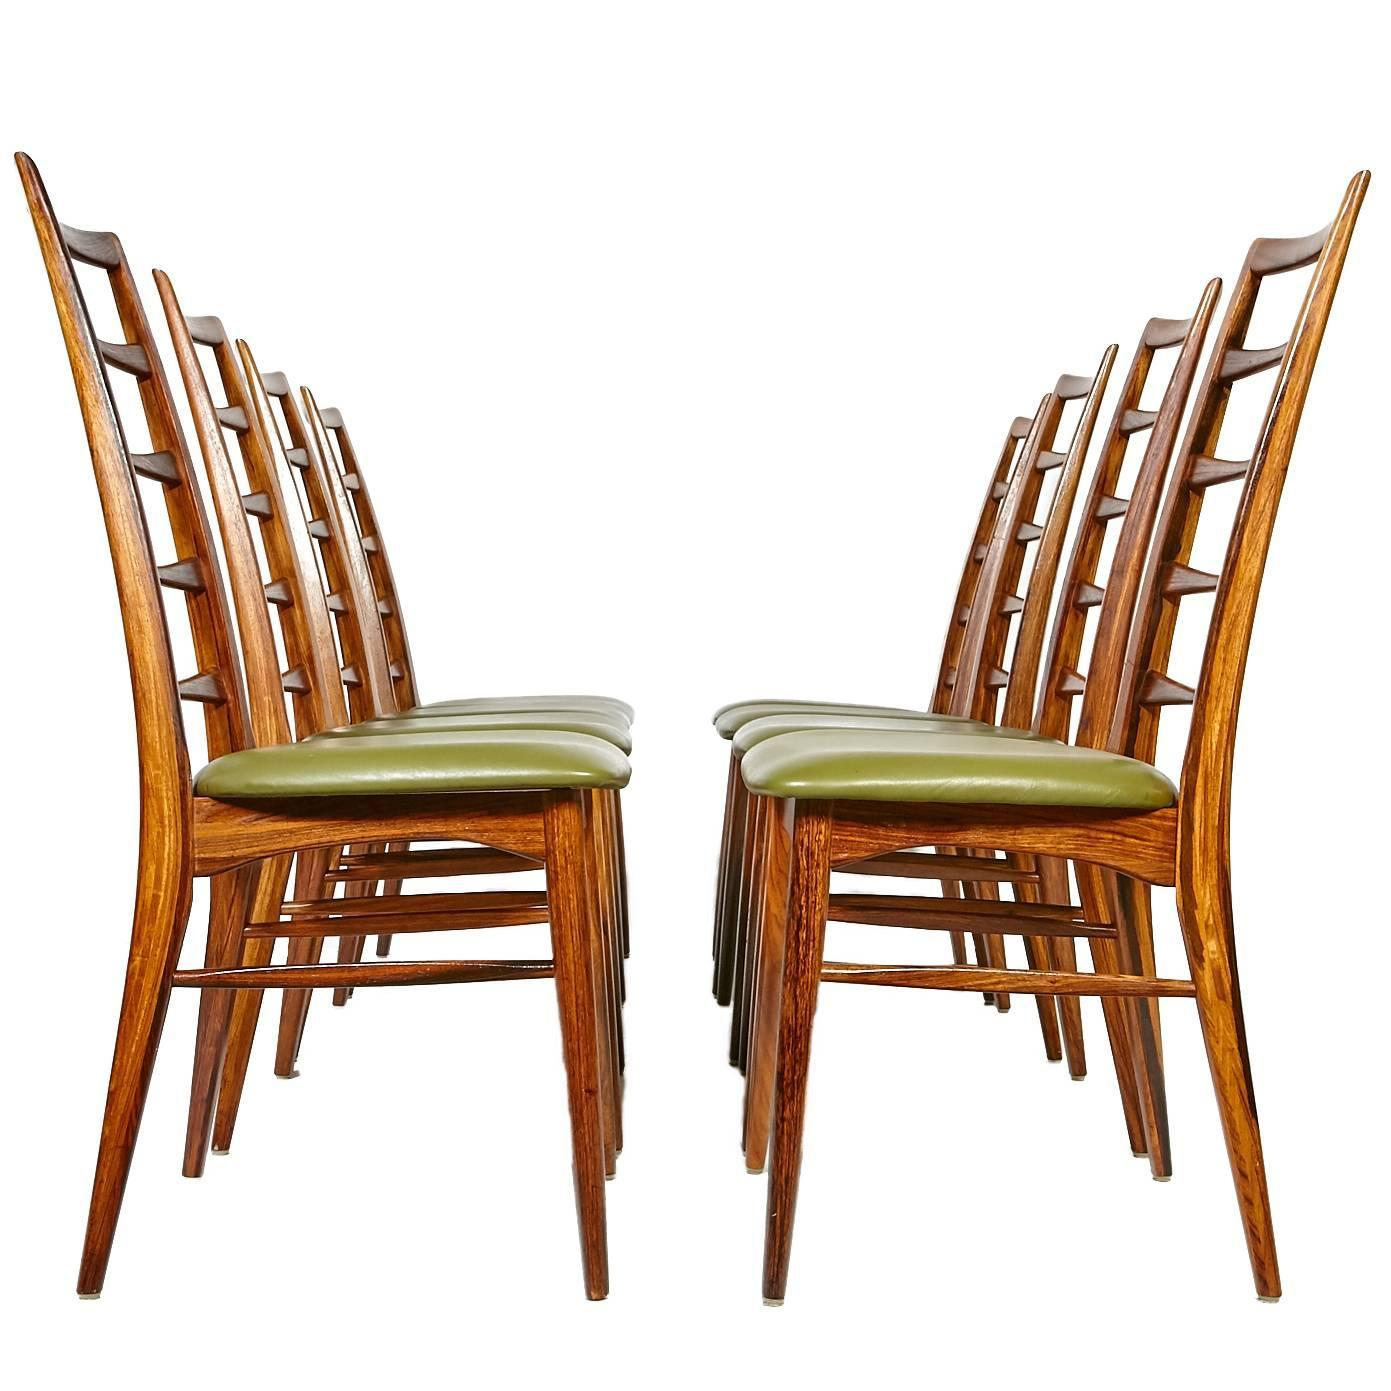 Rosewood ladder back dining chairs by niels koefoeds set of eight at 1stdibs - Ladder back dining room chairs ...